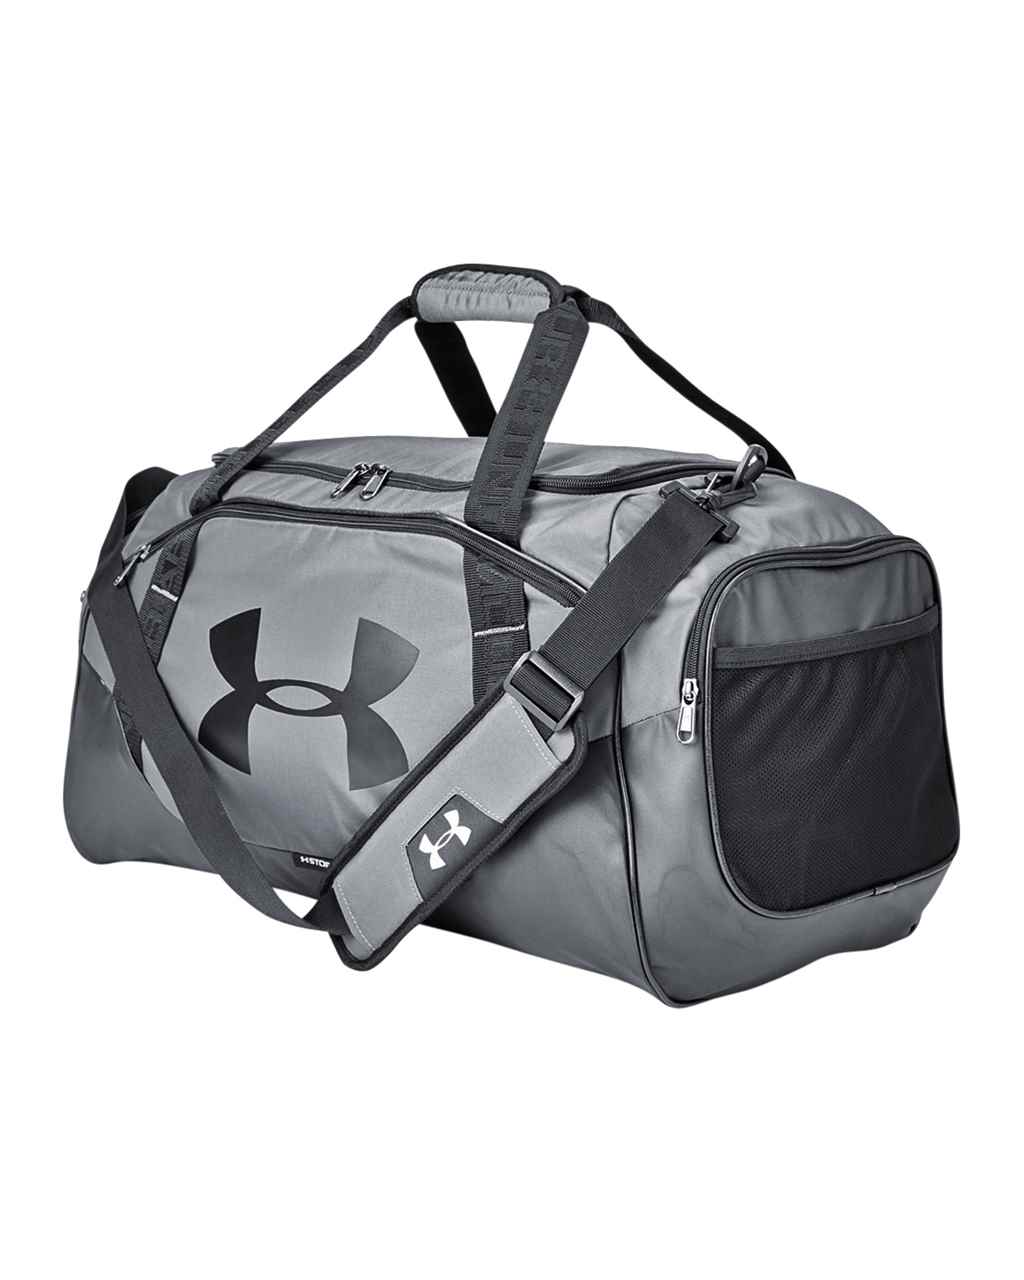 25e9ede3820 Under Armour UA Undeniable Duffle Medium | Entripy